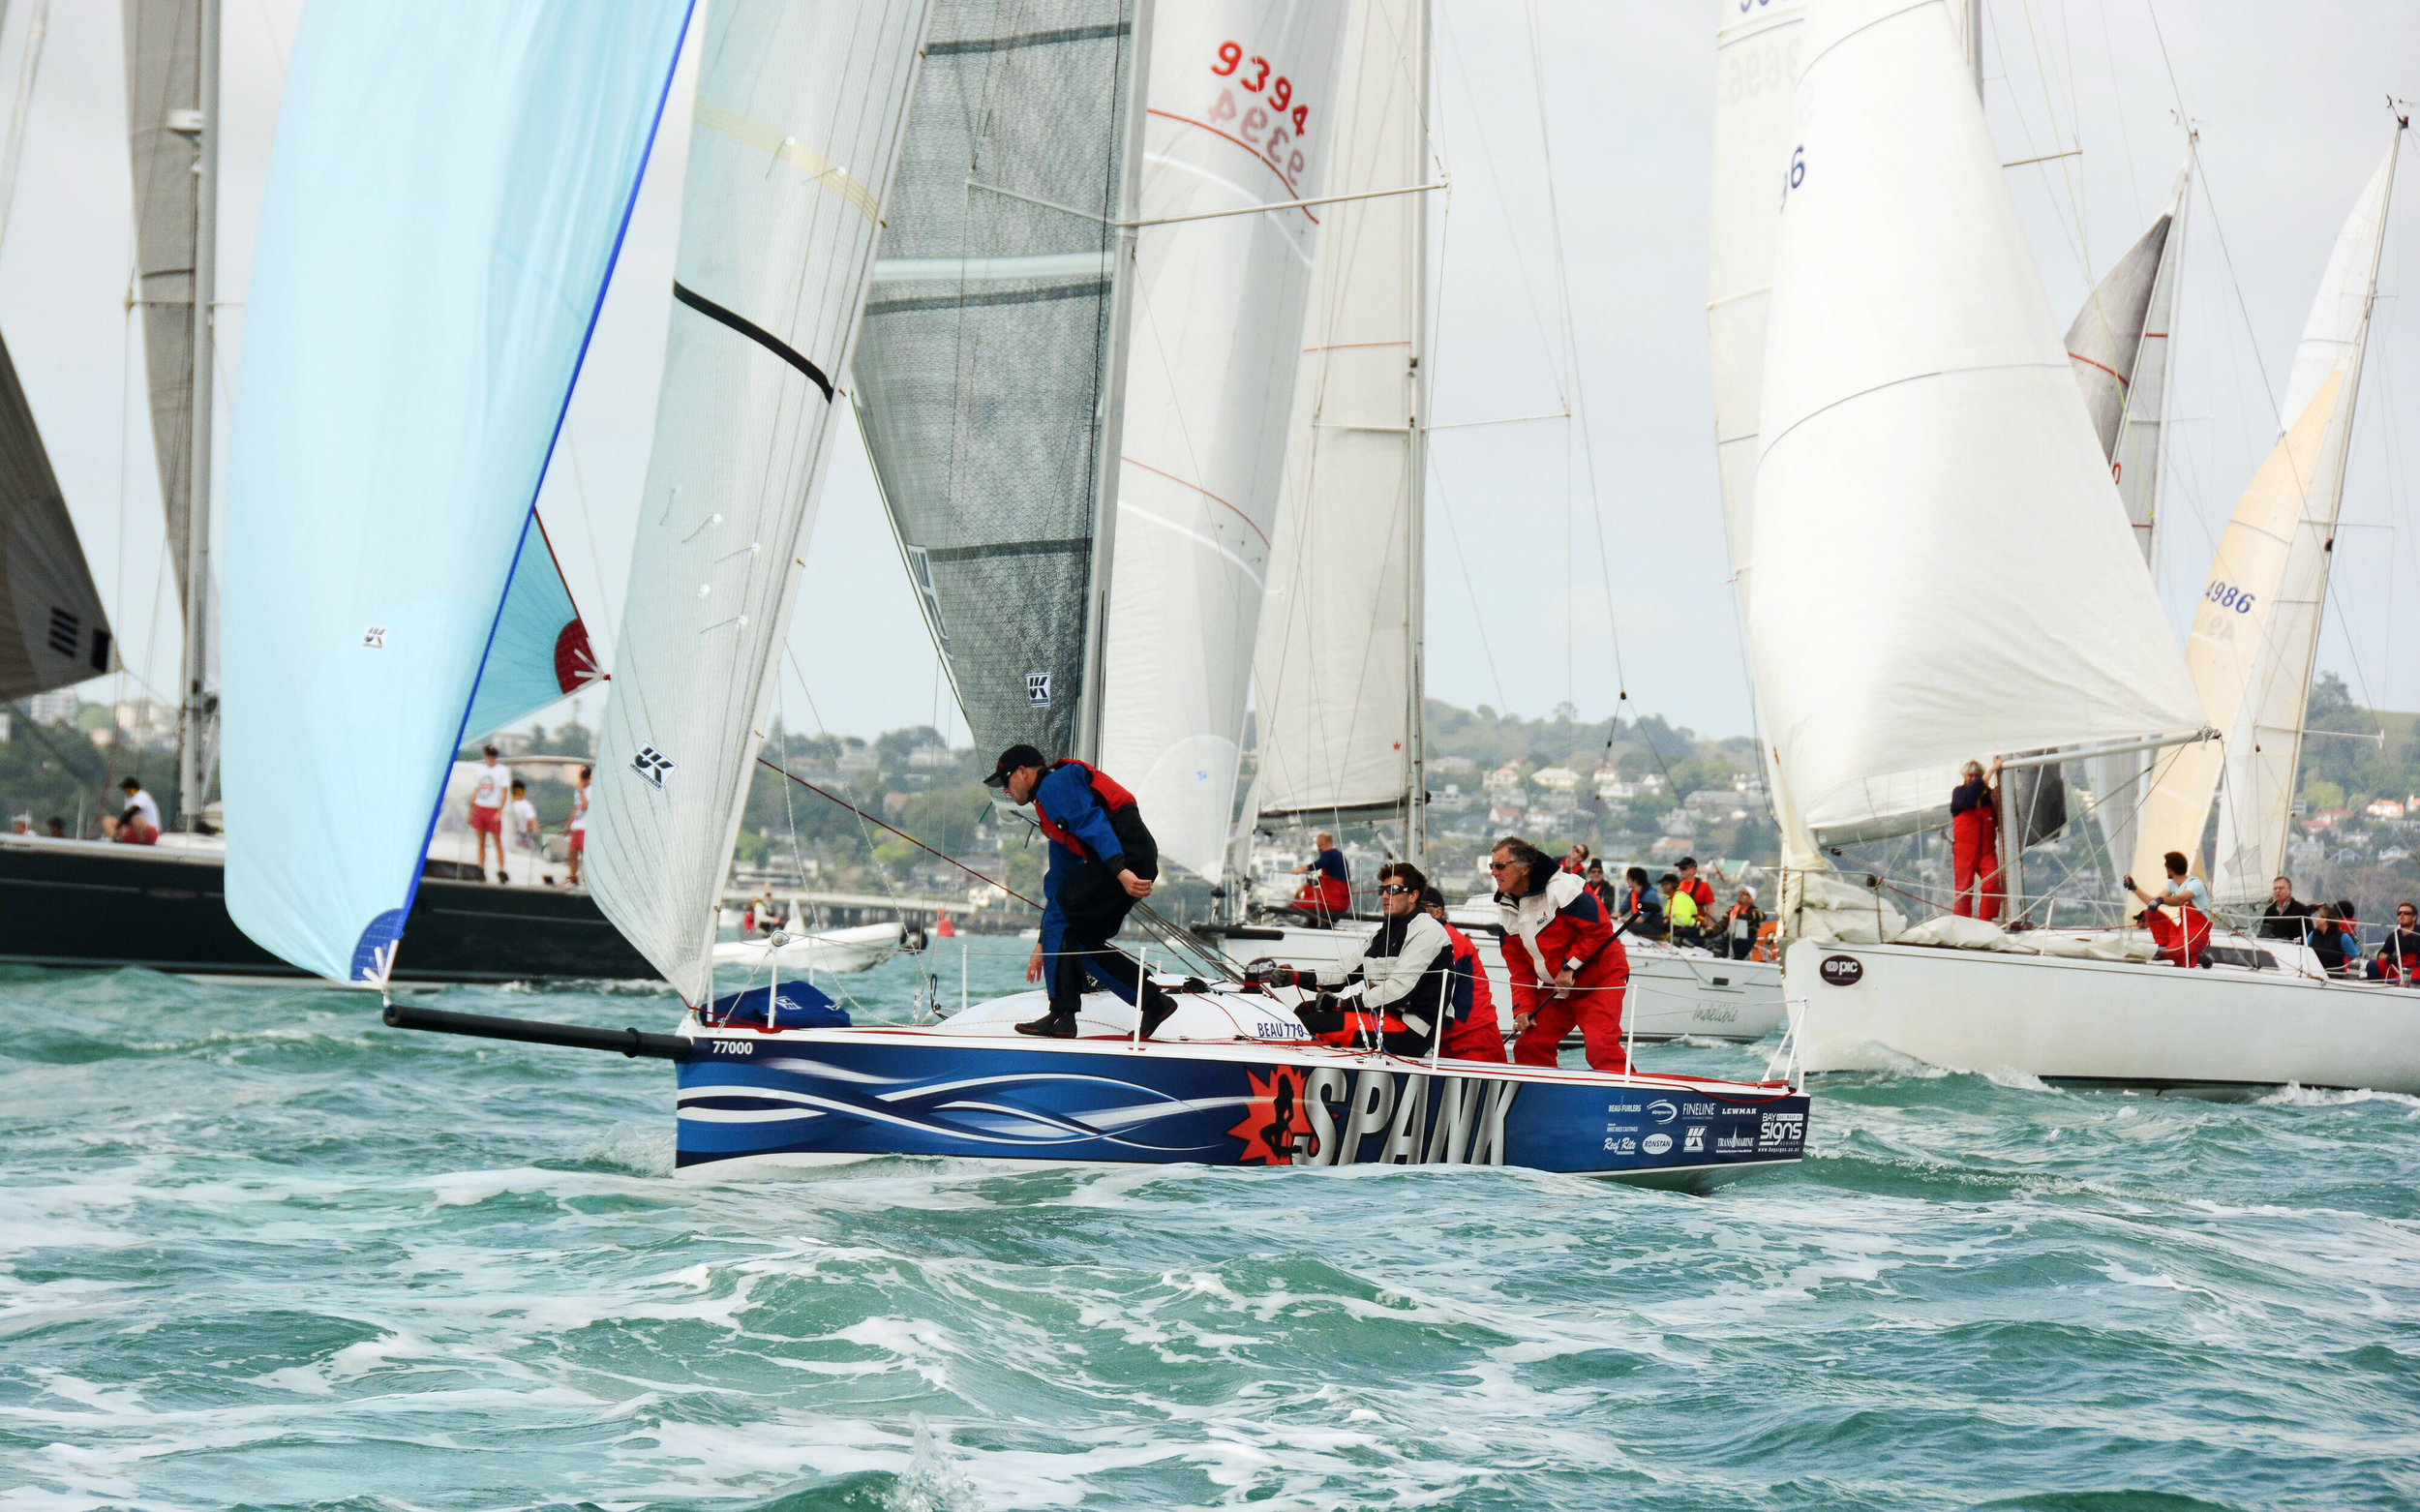 SPANK racing with her UK Sailmakers Titanium main, Tape-Drive genoa and asymmetrical spinnaker.